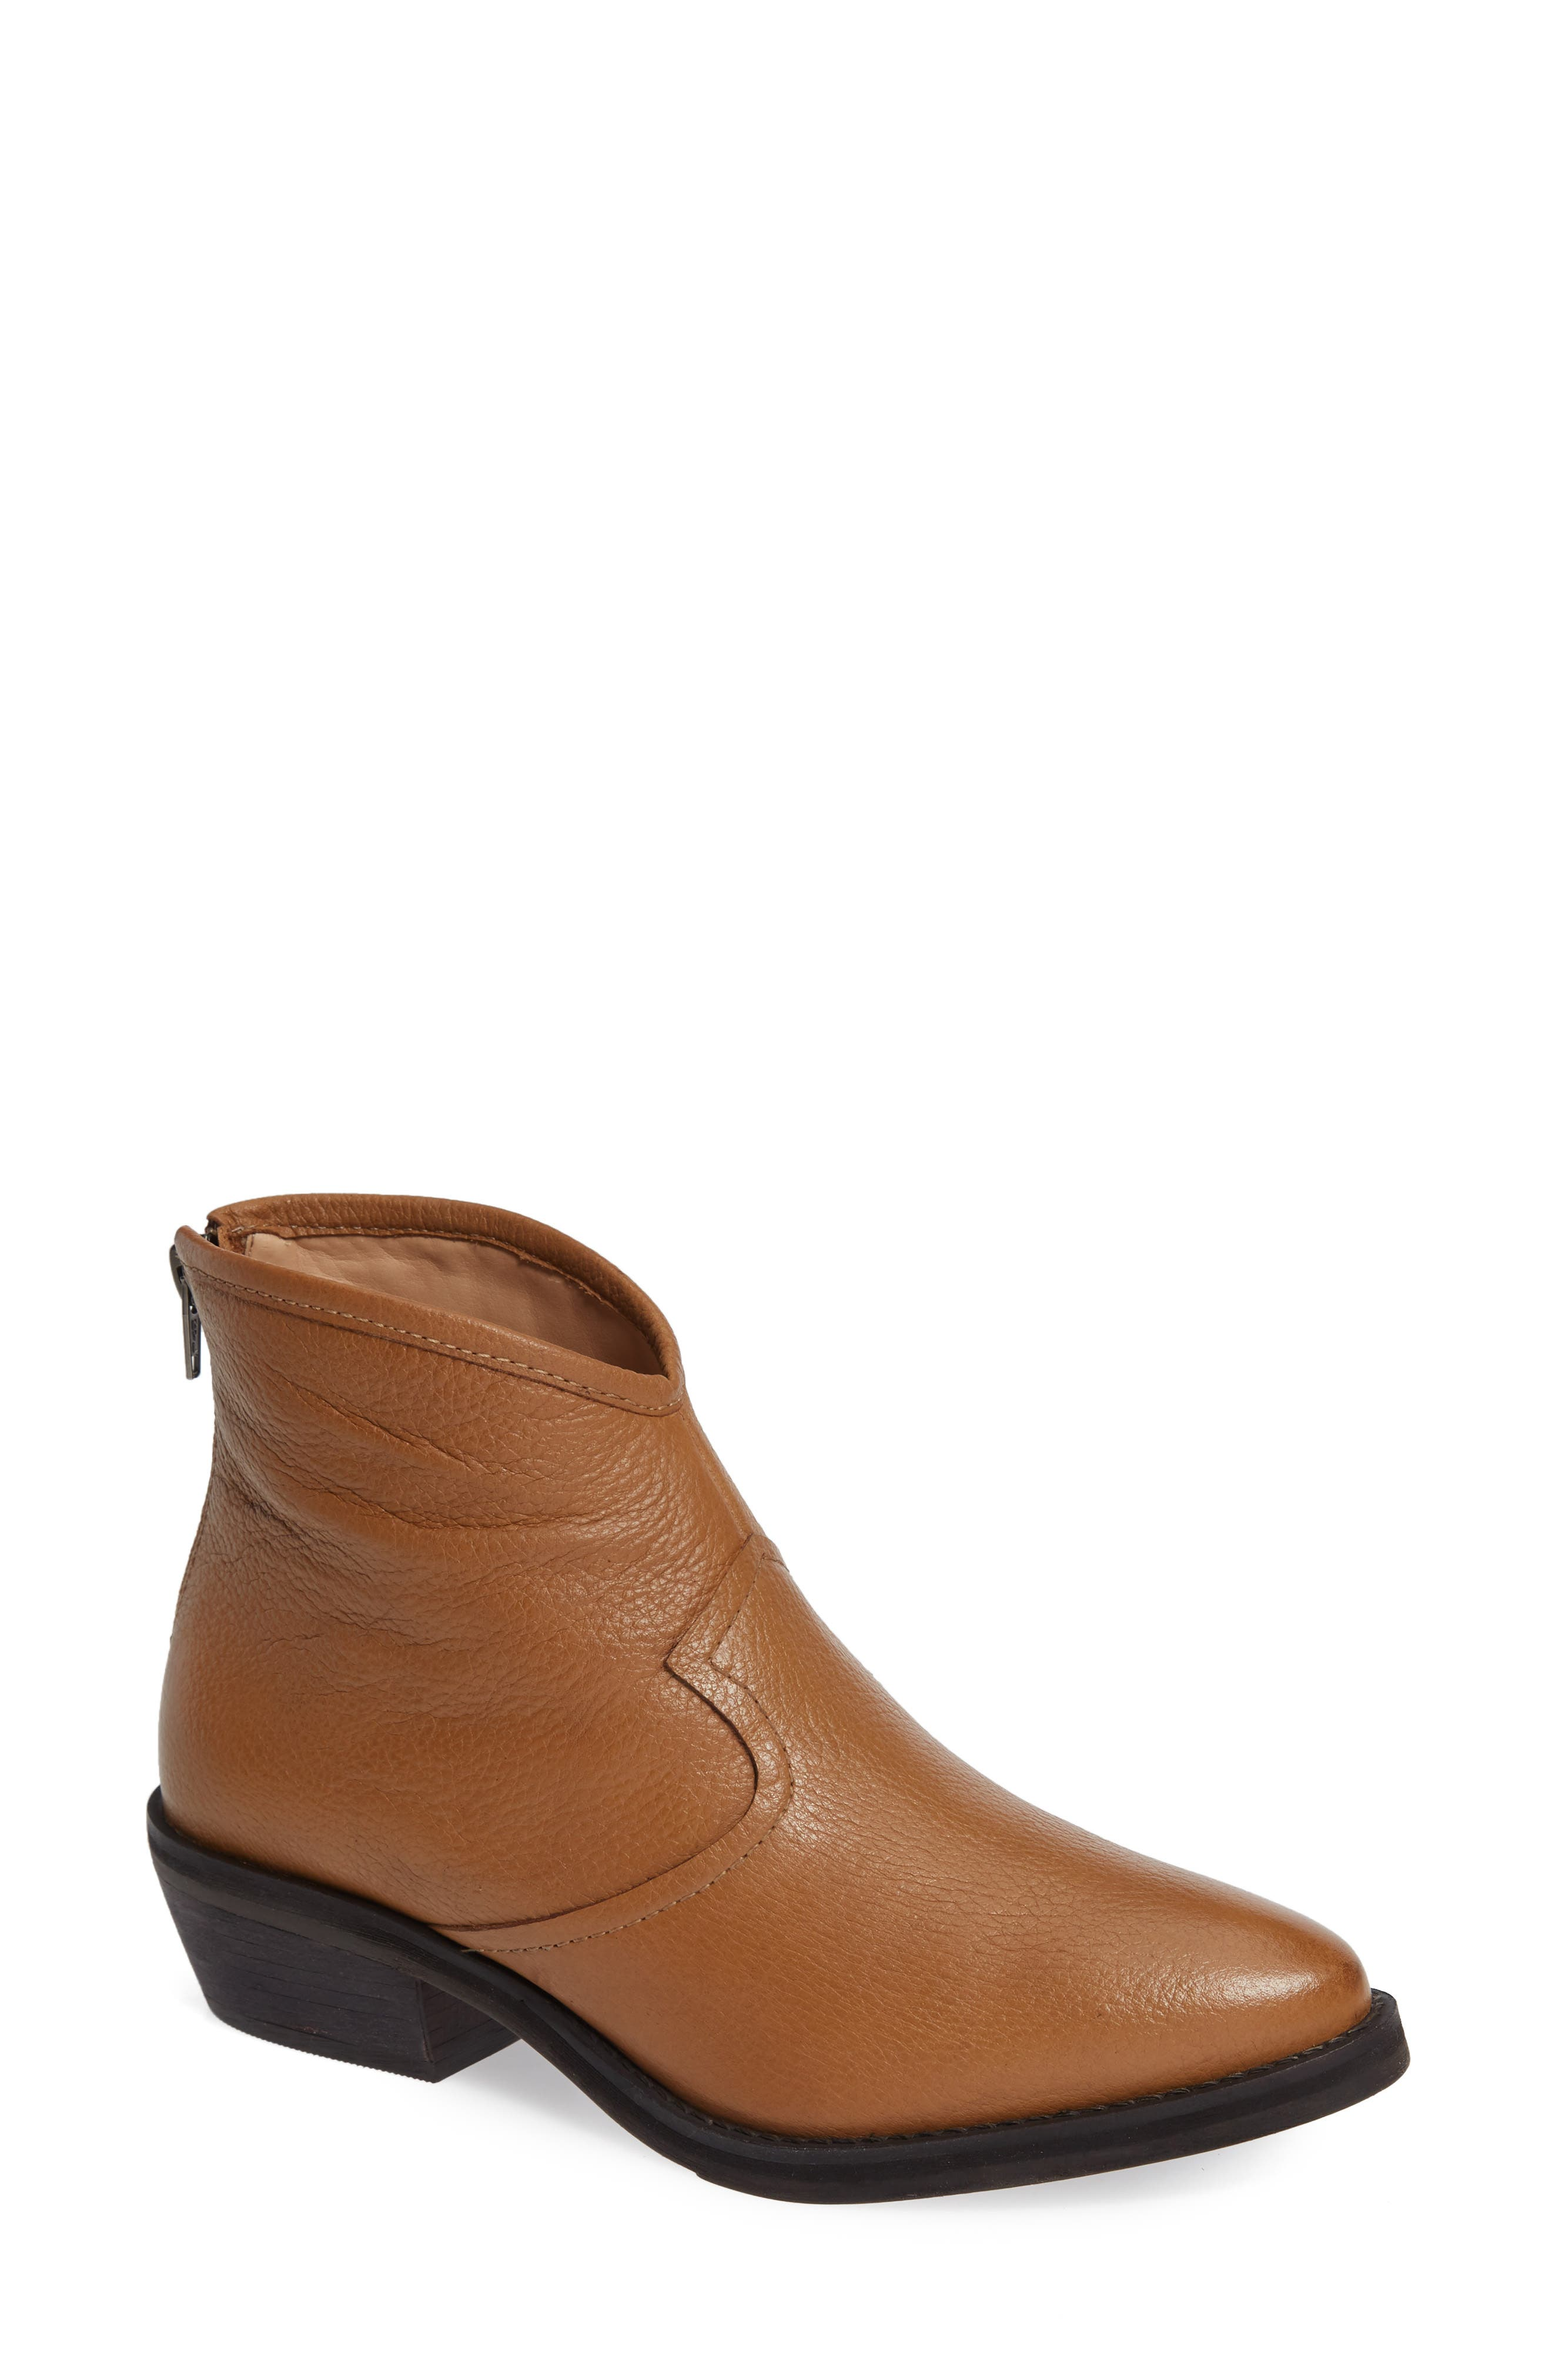 LUST FOR LIFE Patron Bootie in Cognac Leather